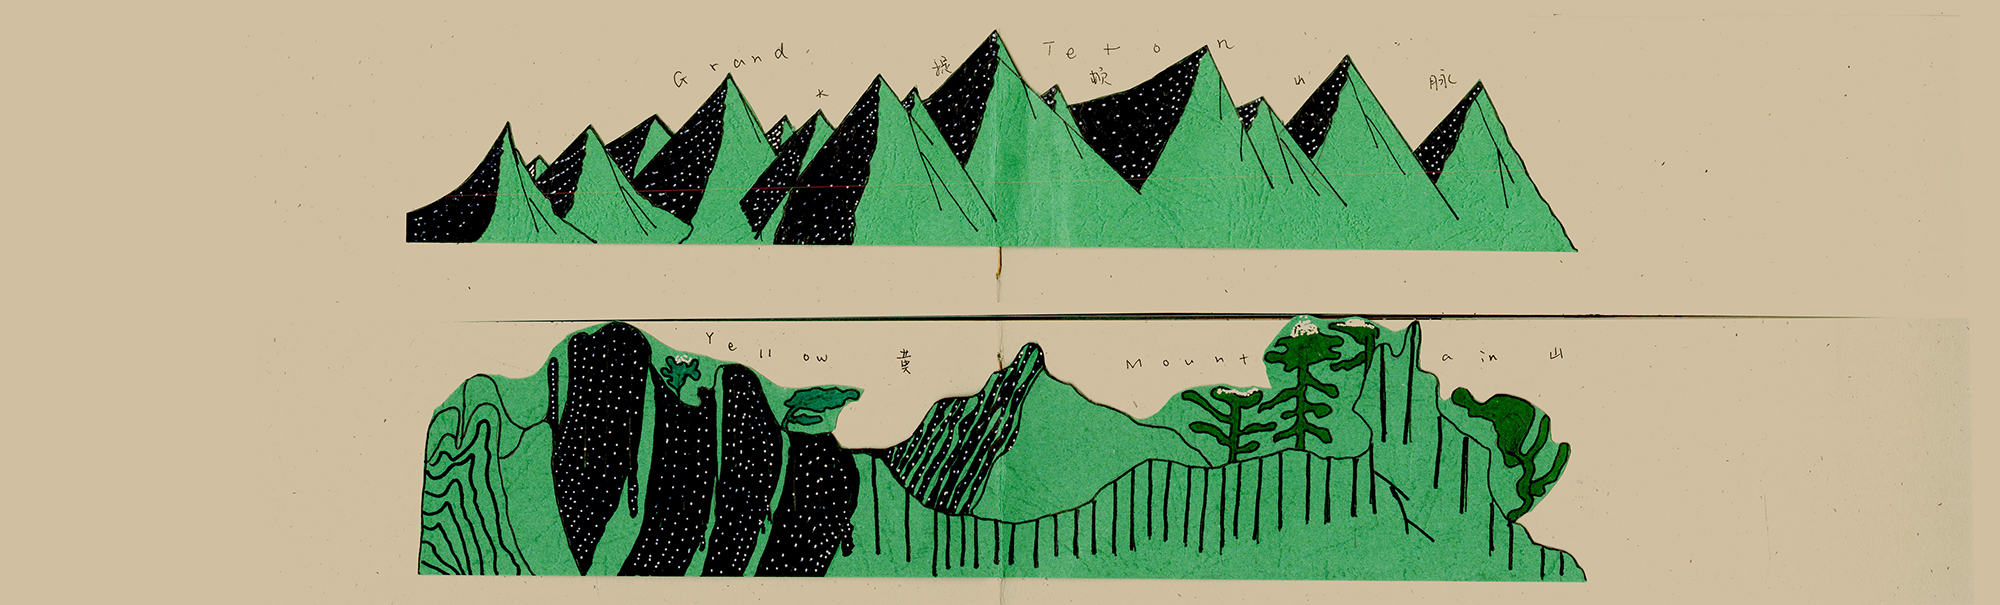 River Book I(Top), River Book II(Bottom), Page 8, 'Pop-Up' Page, Mountain Scene   Two pop-up pages with illustrations representing the Grand Teton Mountains (above) in U.S.A. and the Yellow Mountains in China (below).